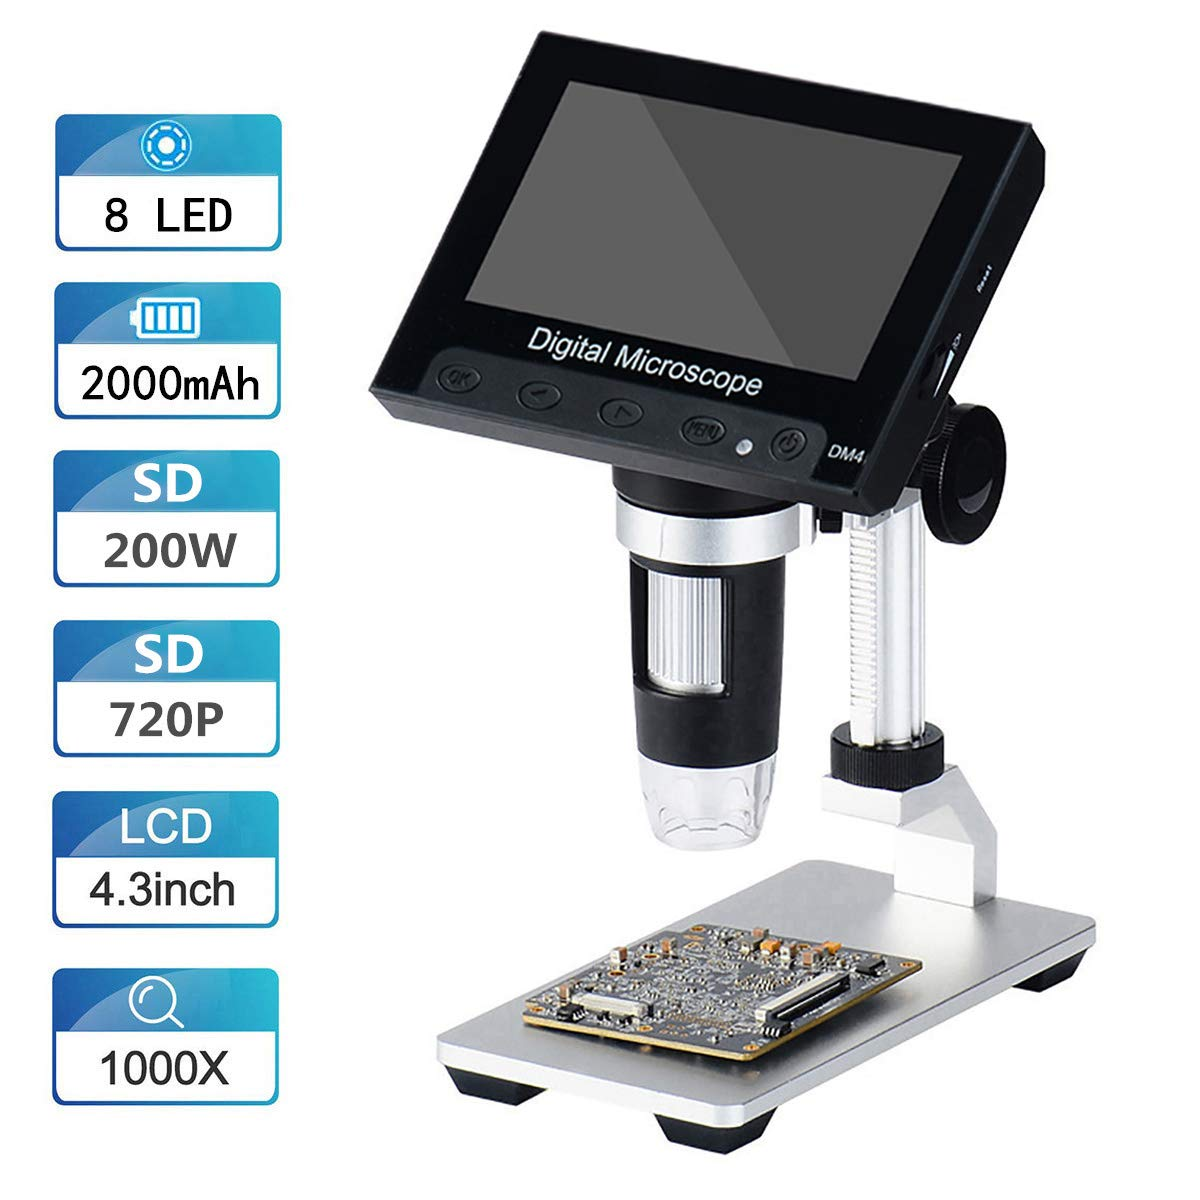 4.3 inch 50X-1000X Magnification Zoom HD 1080P 5 Megapixels Compound 2000 mAh Battery USB Microscope 8 Adjustable LED Light Video Camera Microscope Vilihy LCD Digital Microscope